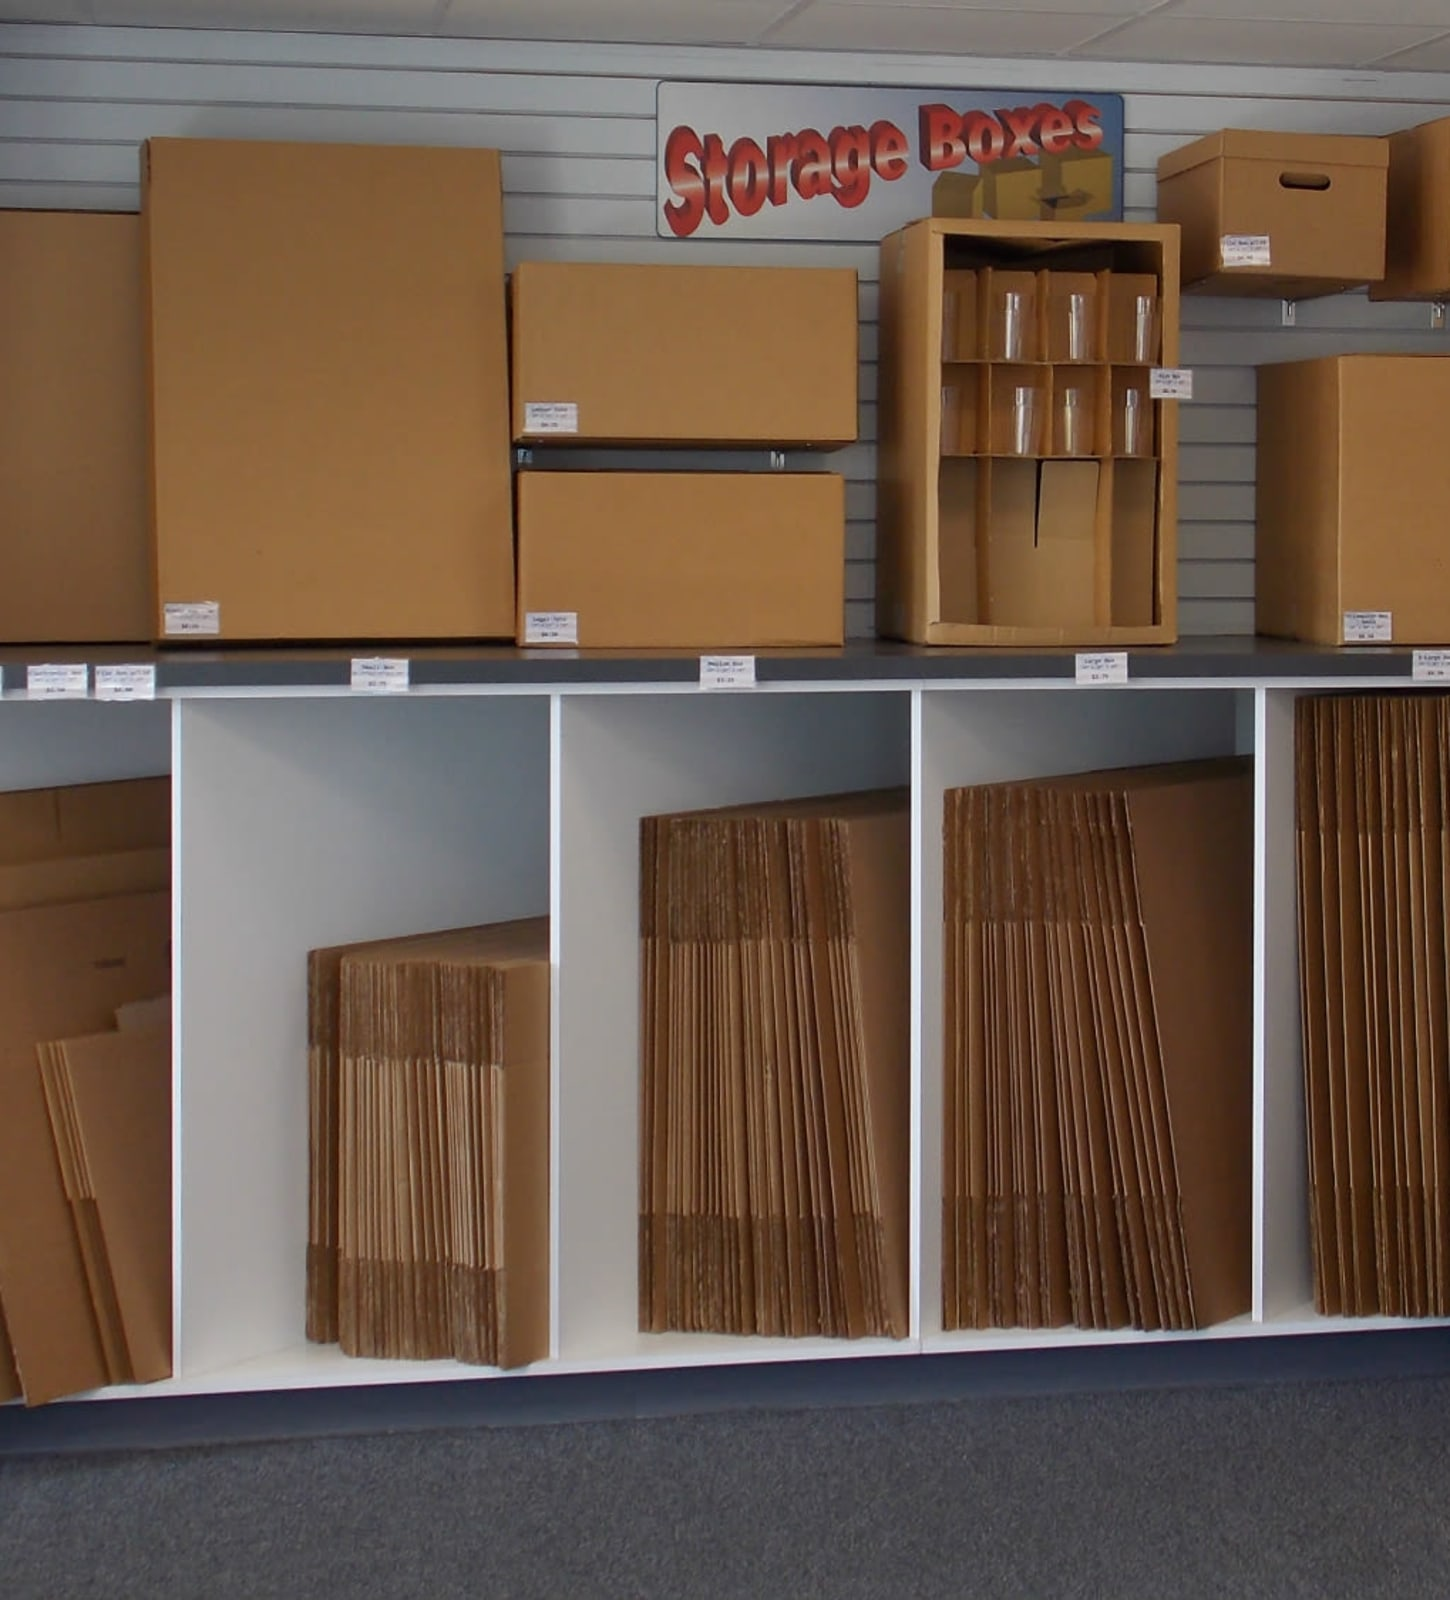 Storage boxes for sale at Air and Space Self Storage